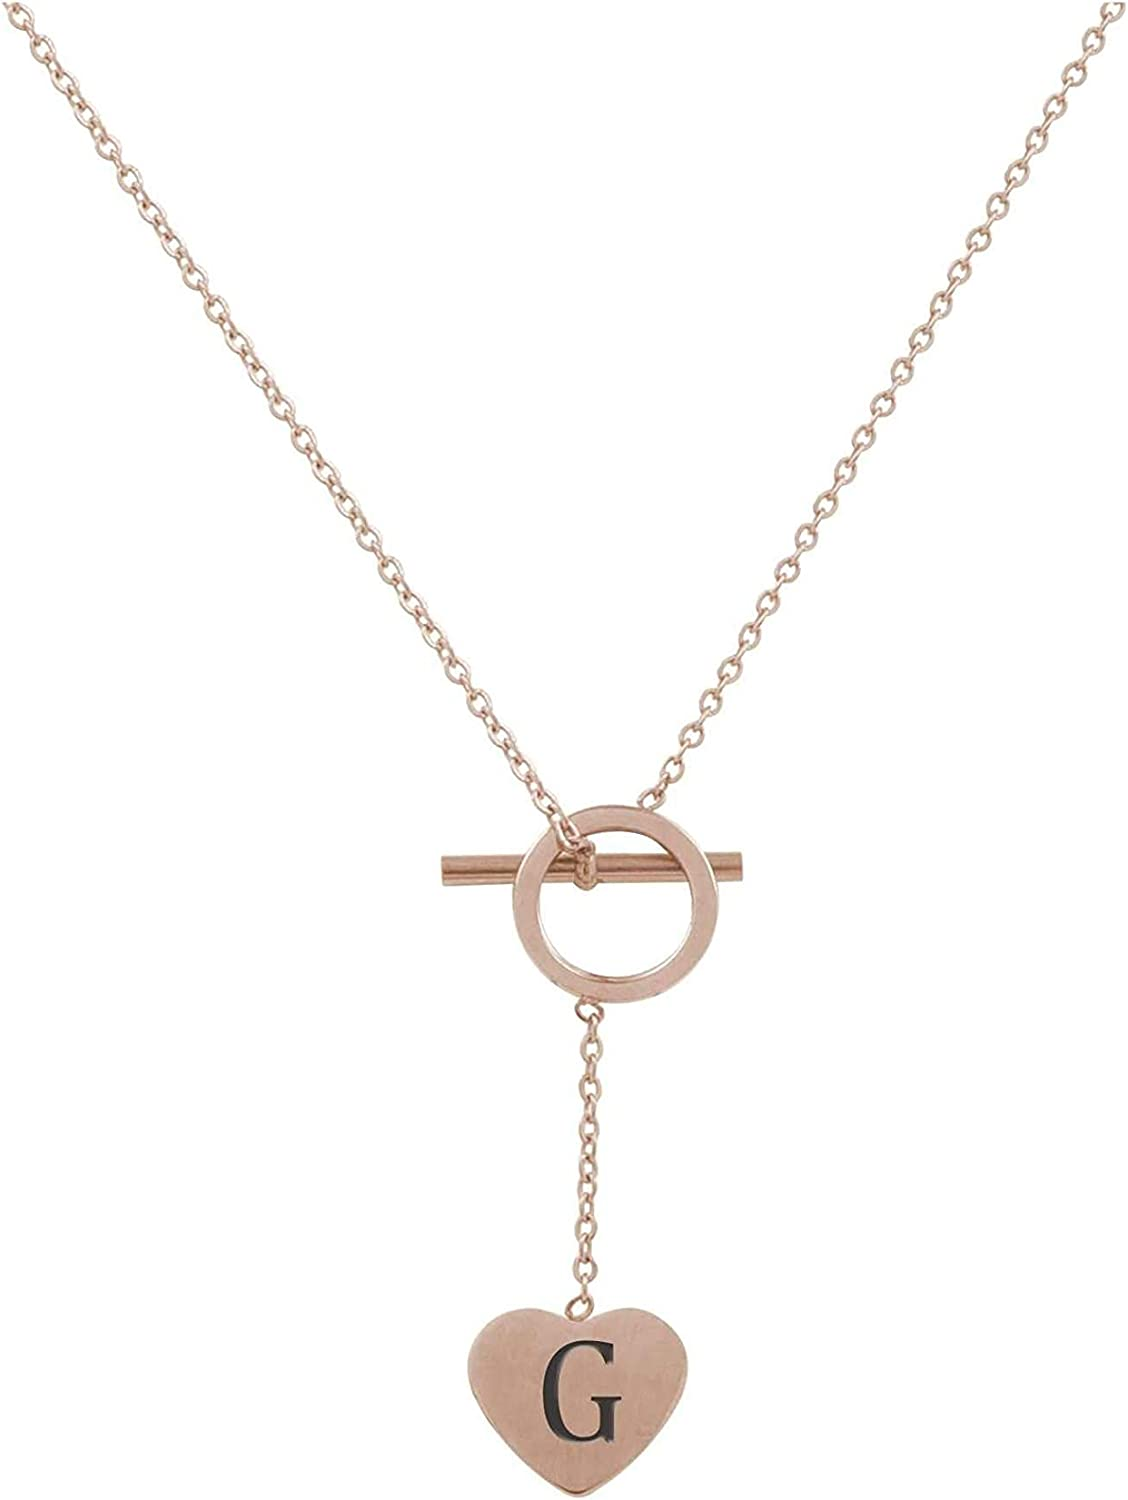 Pink Box Heart Lariat Initial Necklace G - Rose Gold